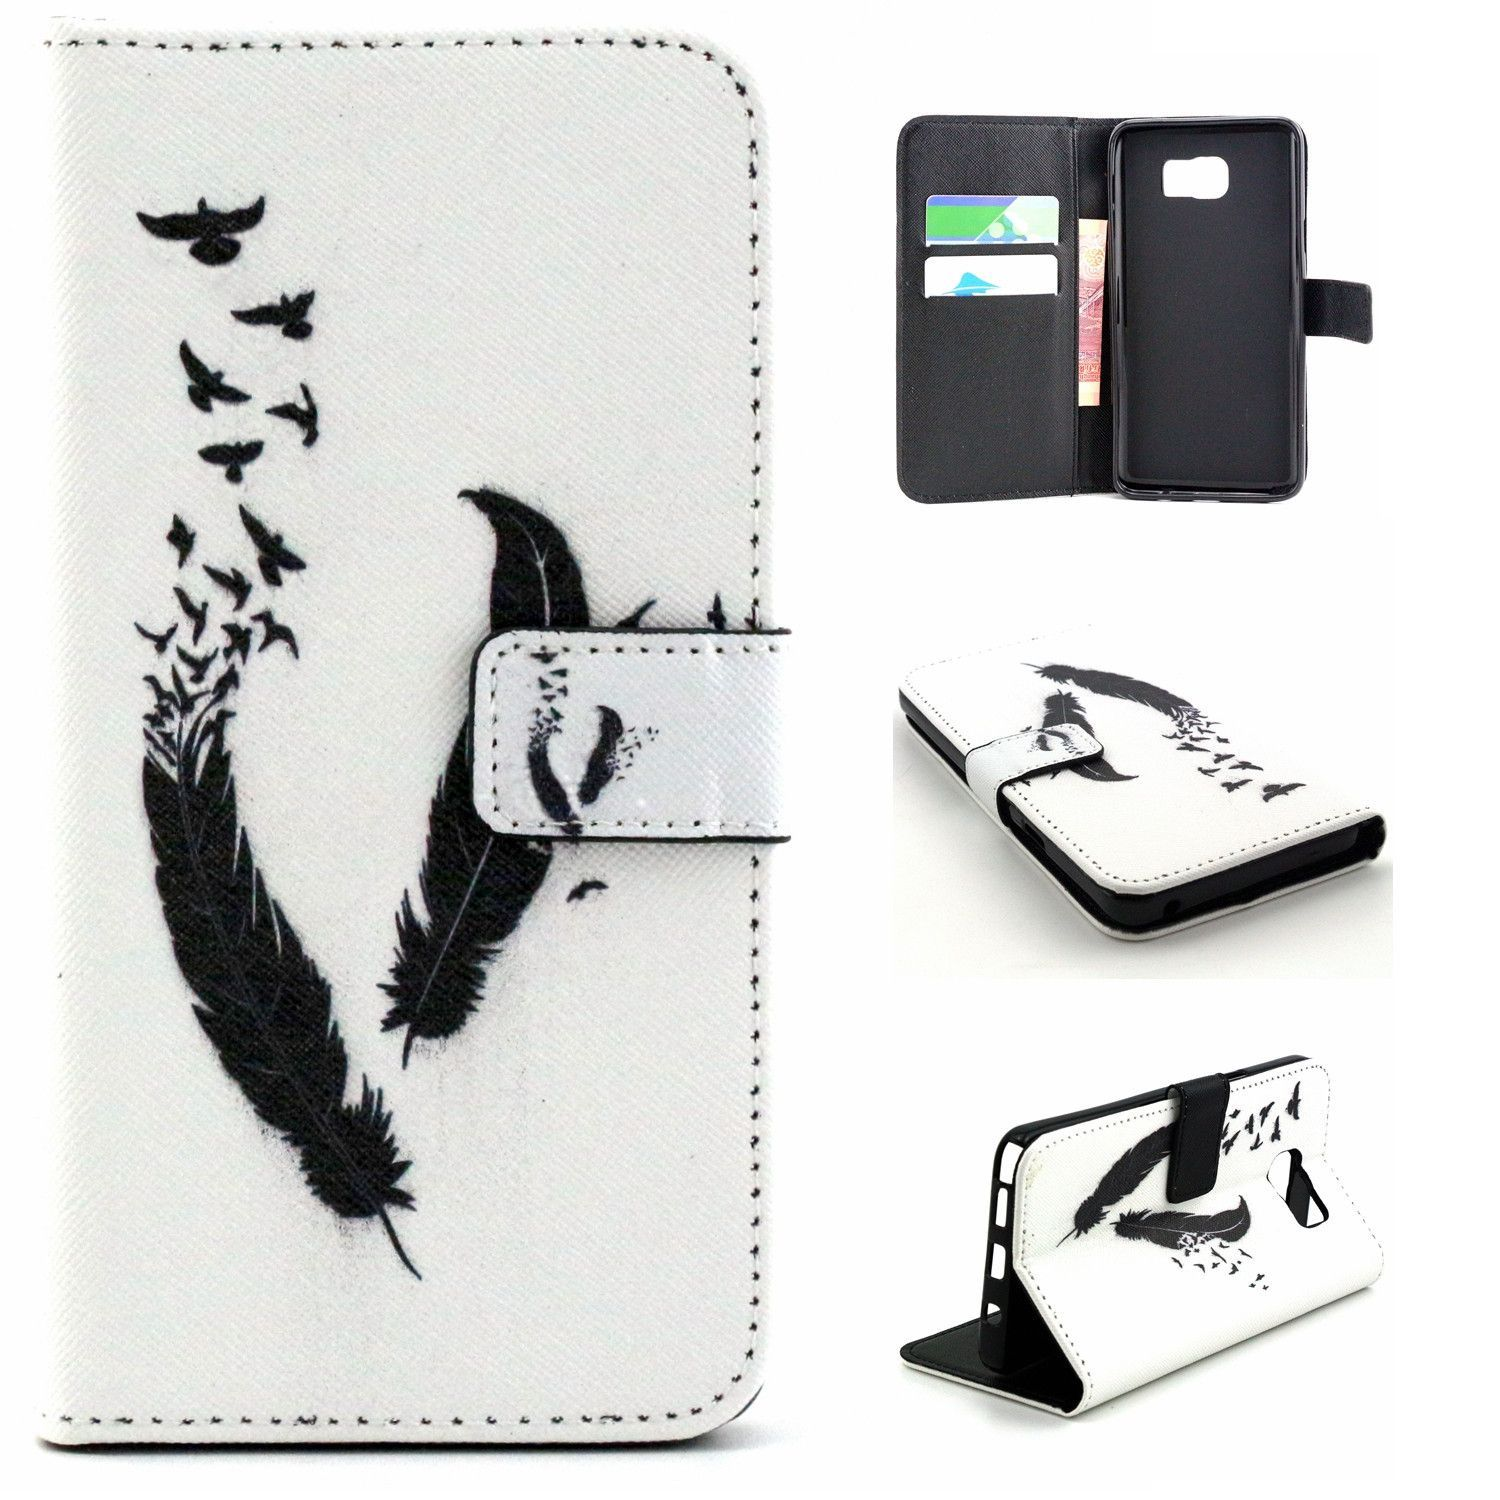 Samsung Galaxy Note 5 Leather Wallet Case With Magnetic Closure - Feather Doves